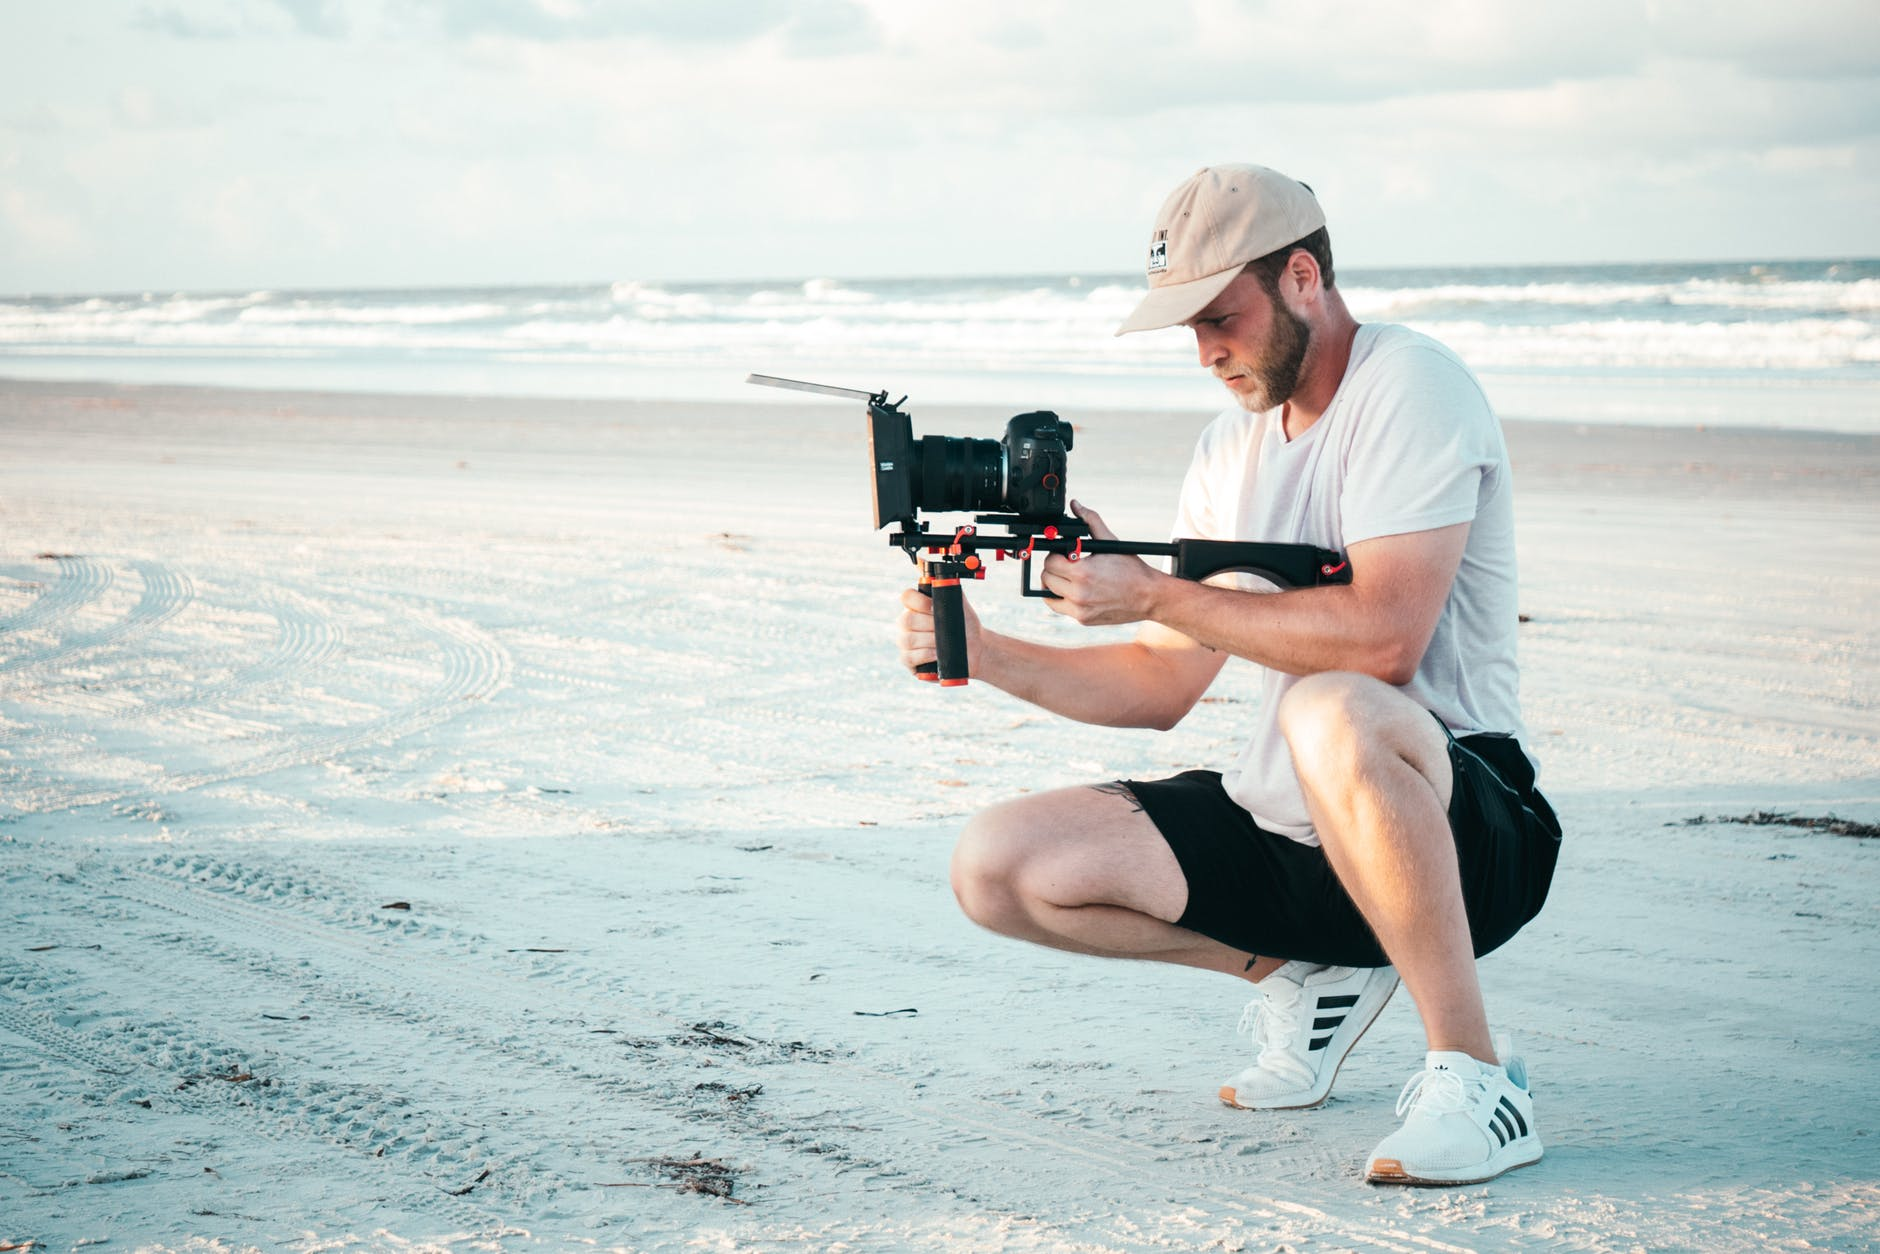 Male taking a video on the beach front